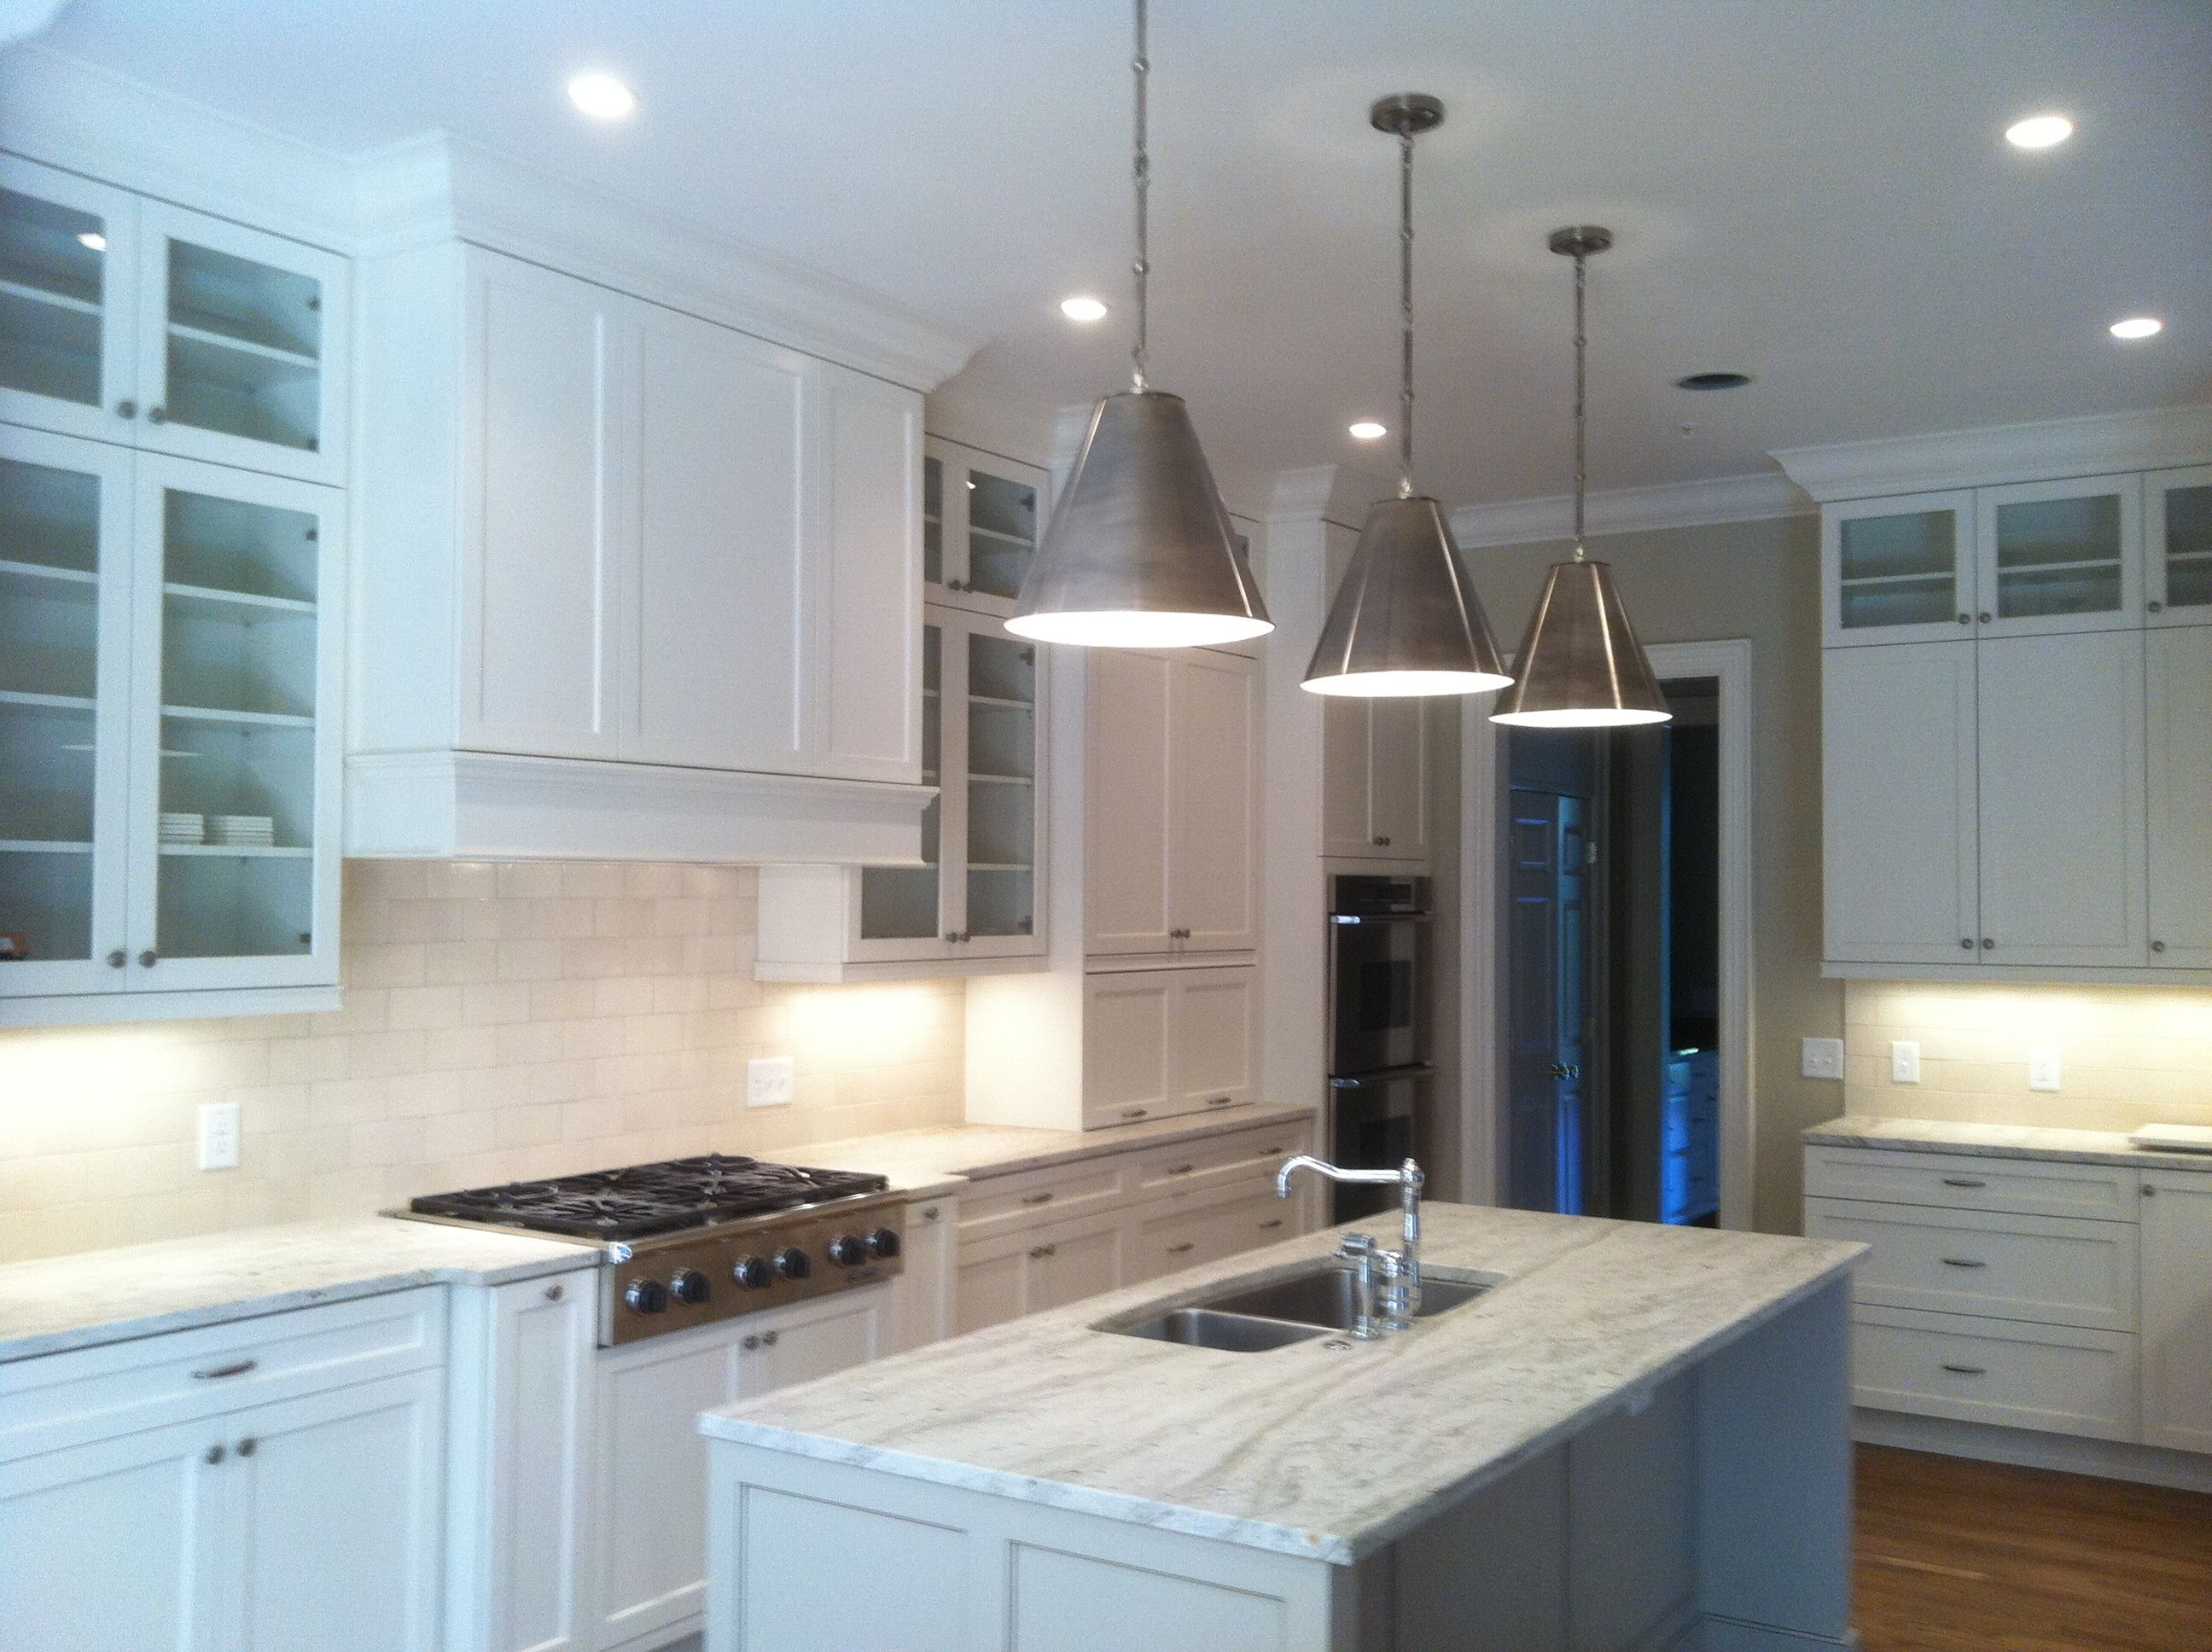 Cabinets In Sea Pearl And Revere Pewter By Benjamin Moore Revere Pewter Bedroom Revere Pewter Kitchen Home Decor Kitchen